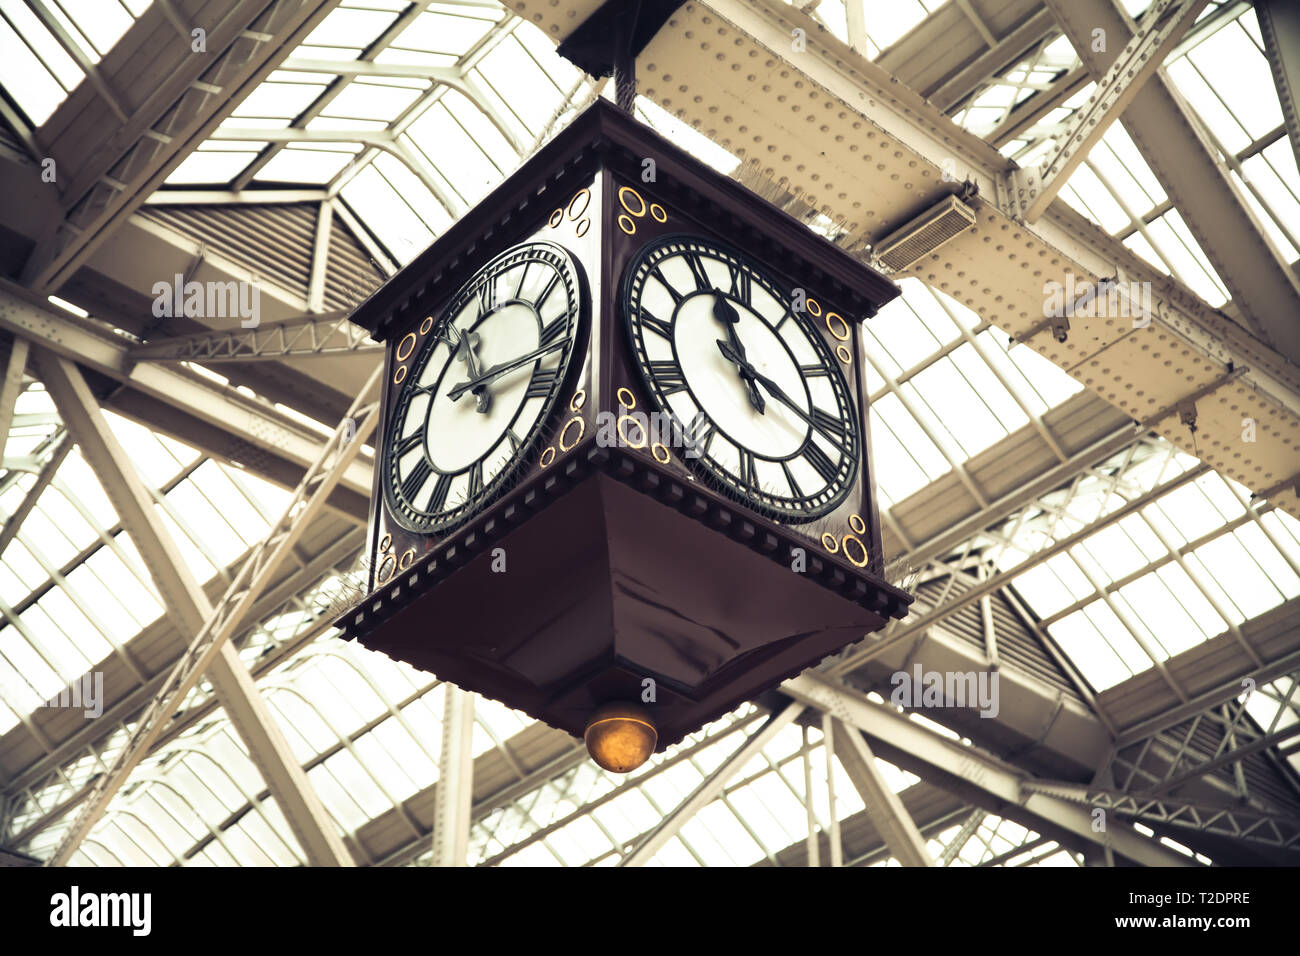 Meeting Point of Glasgow Central Station vintage clock Scotland Stock Photo